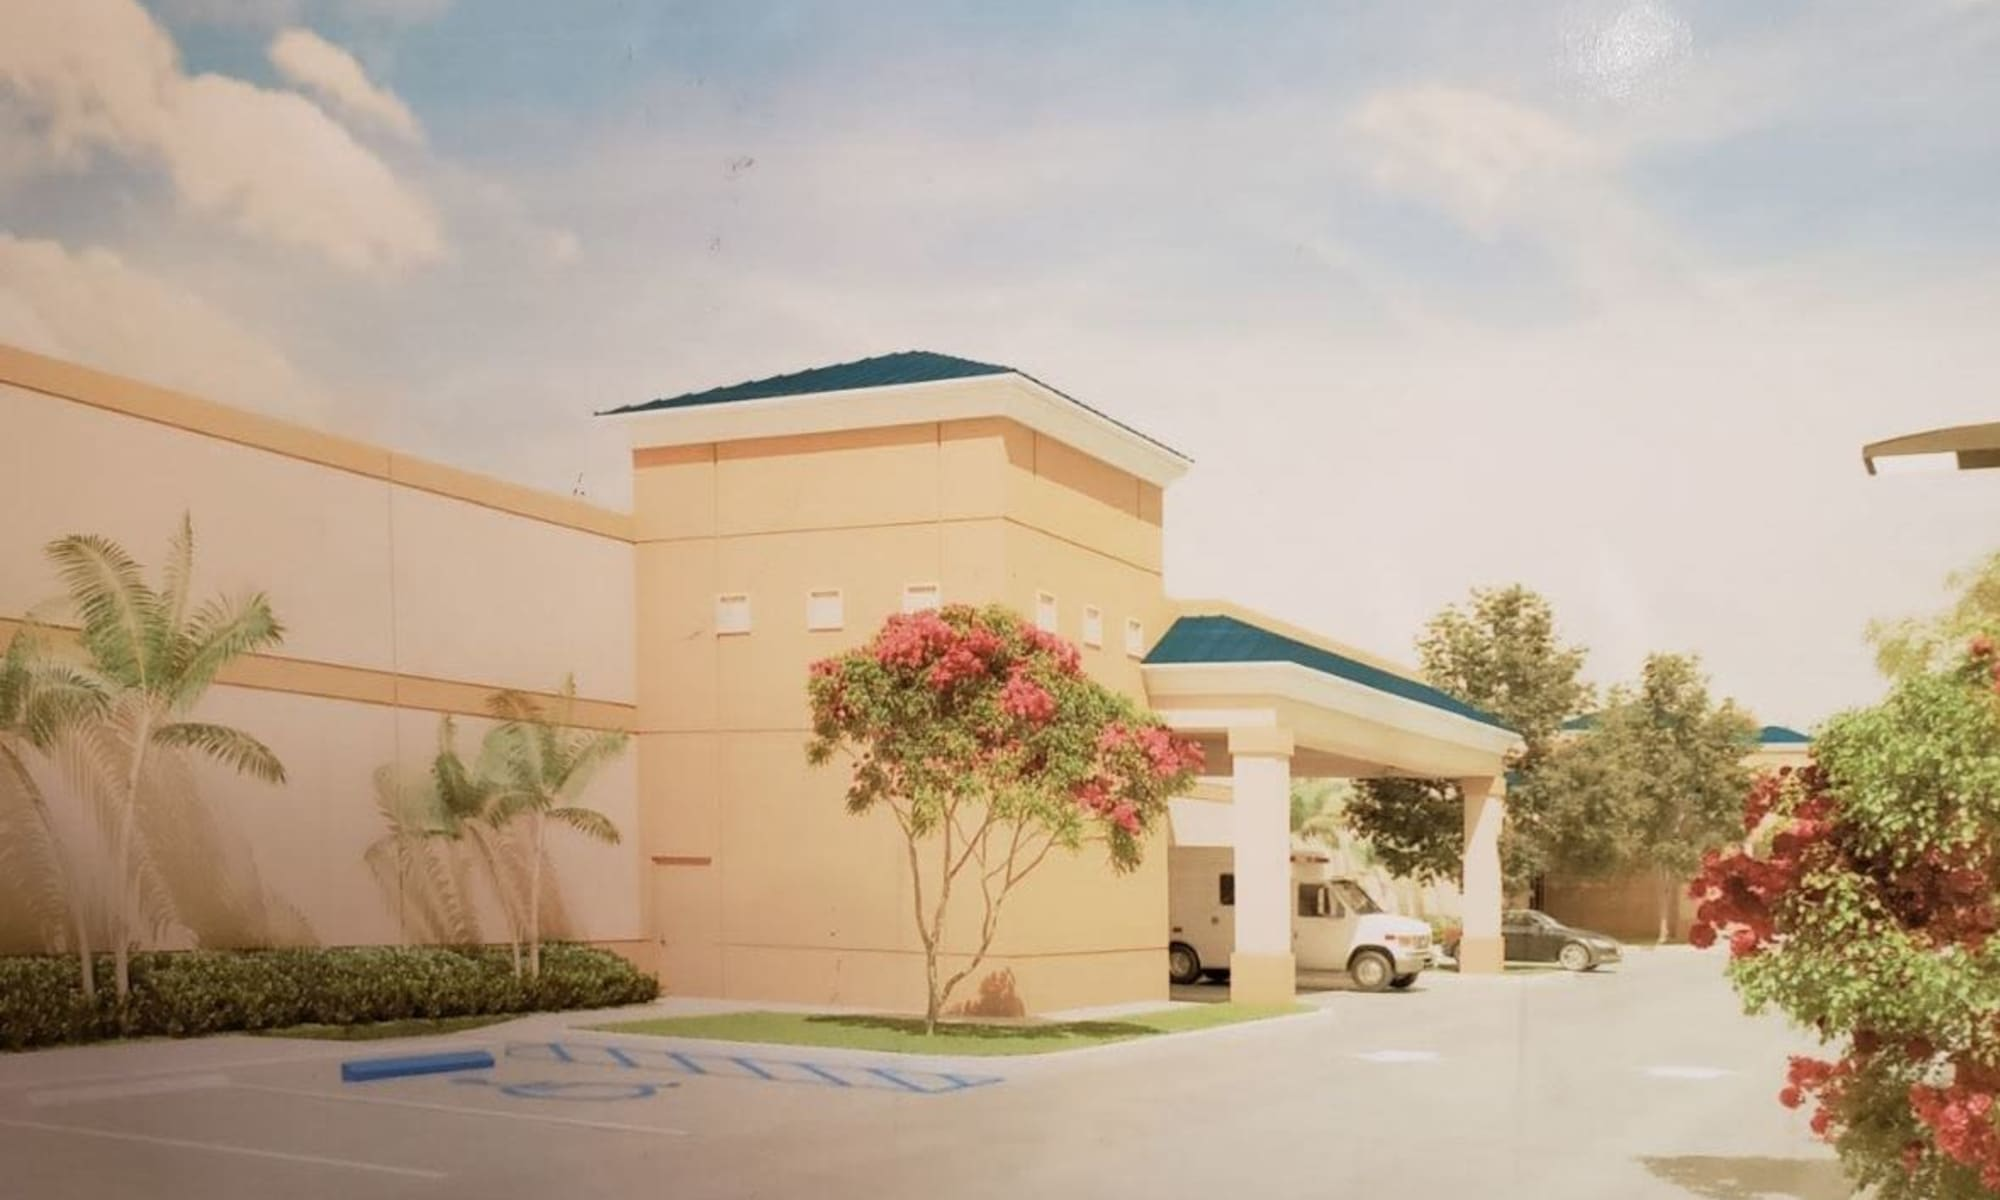 Parking lot and front entry into Top Self Storage in West Palm Beach, Florida